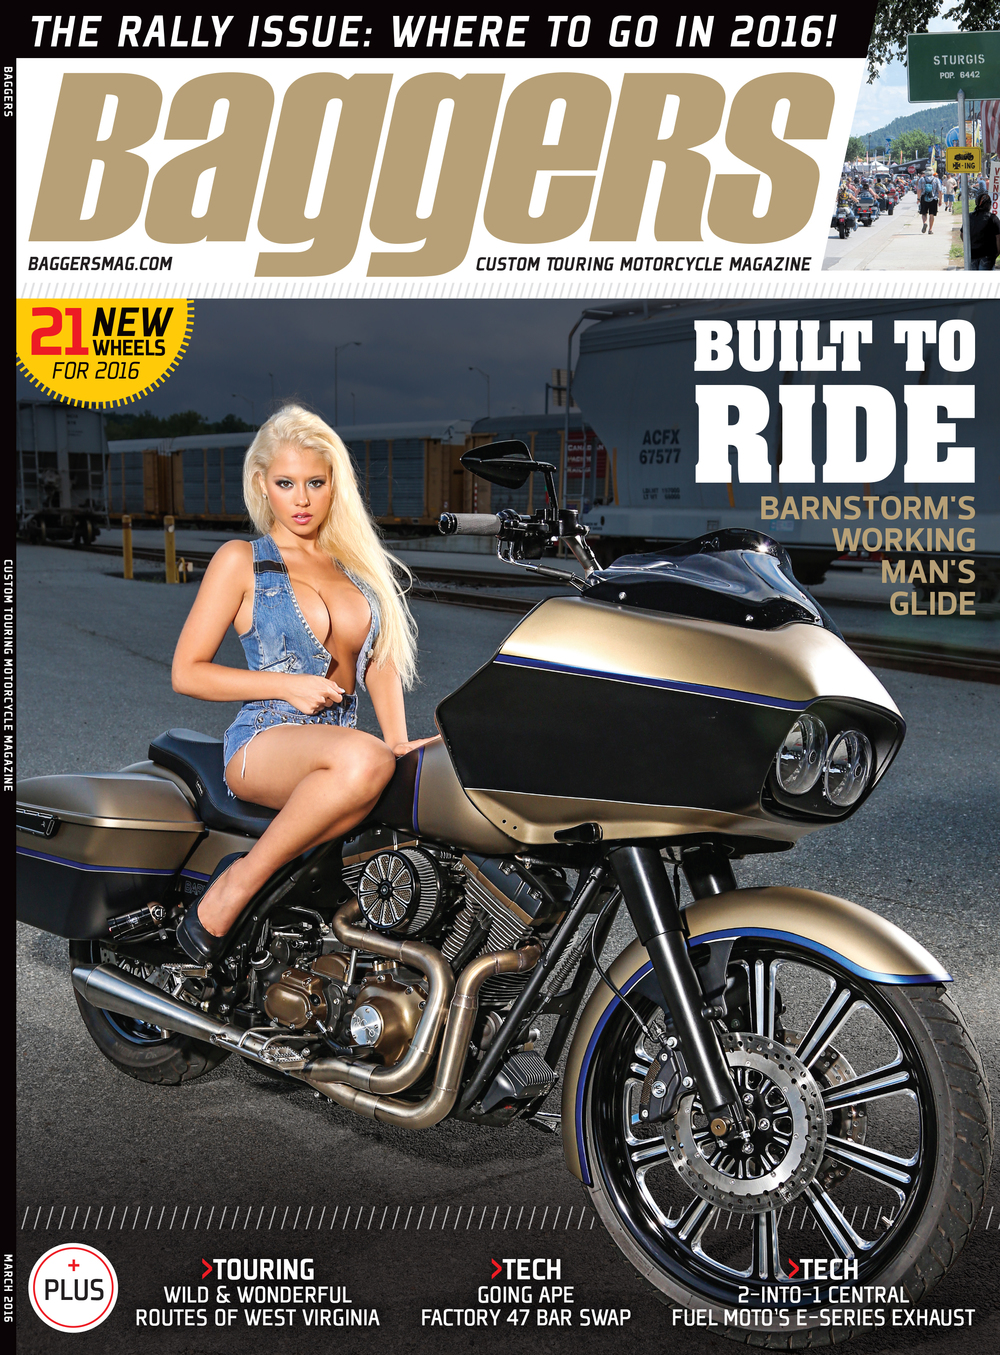 Cover of the March 2016 issue of Baggers Magazine available on newsstands nationwide